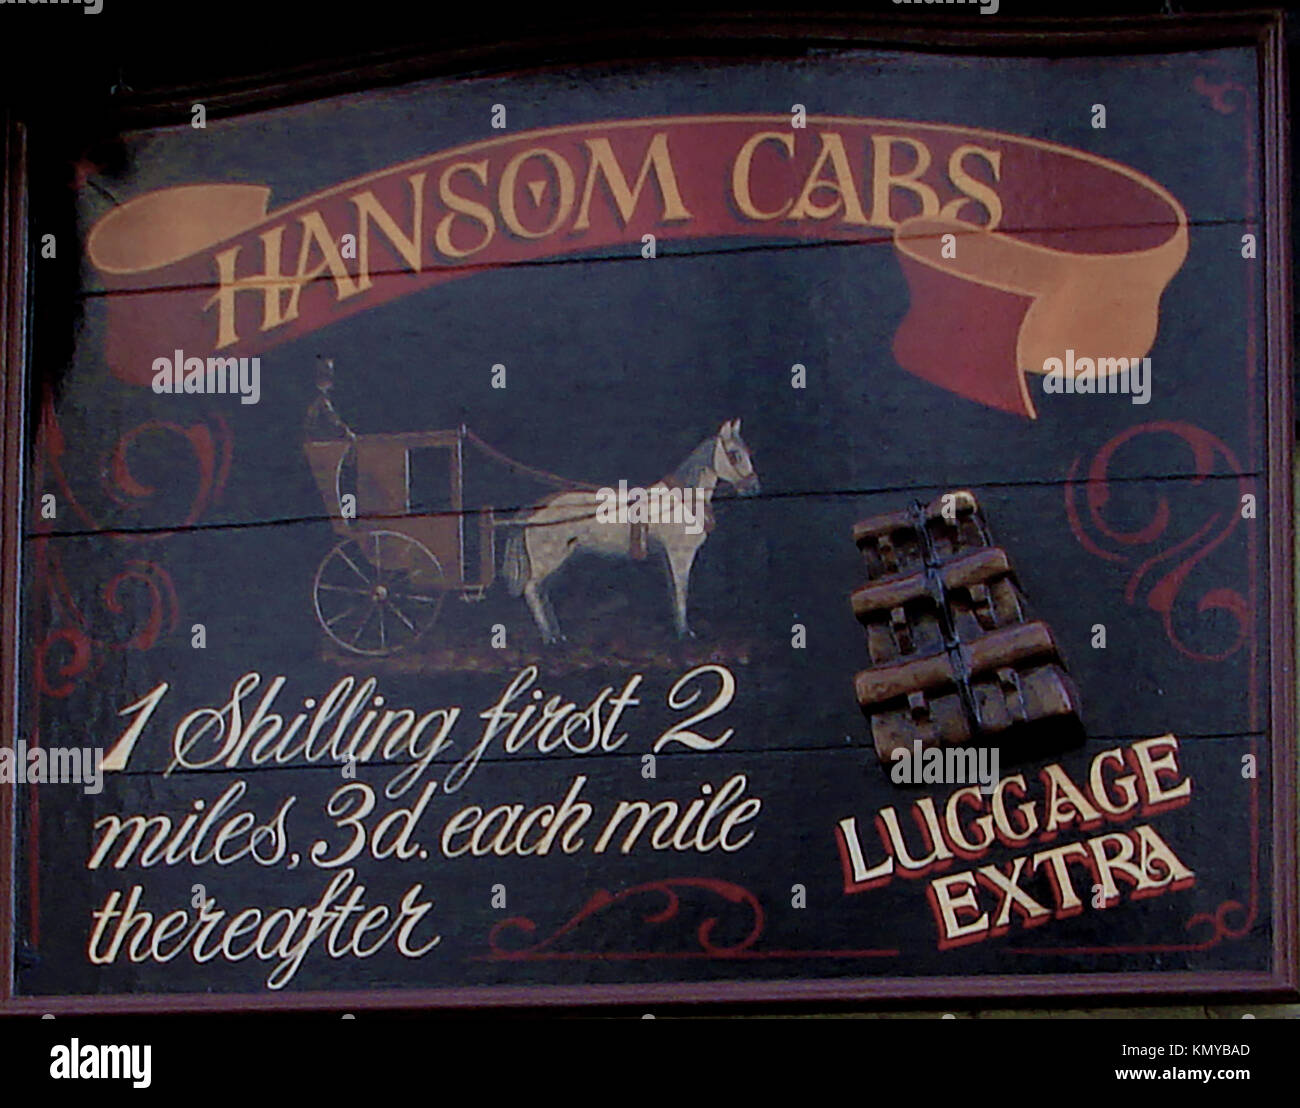 English Hansome Cab sign showing passenger fares - Horse-drawn transport - Stock Image